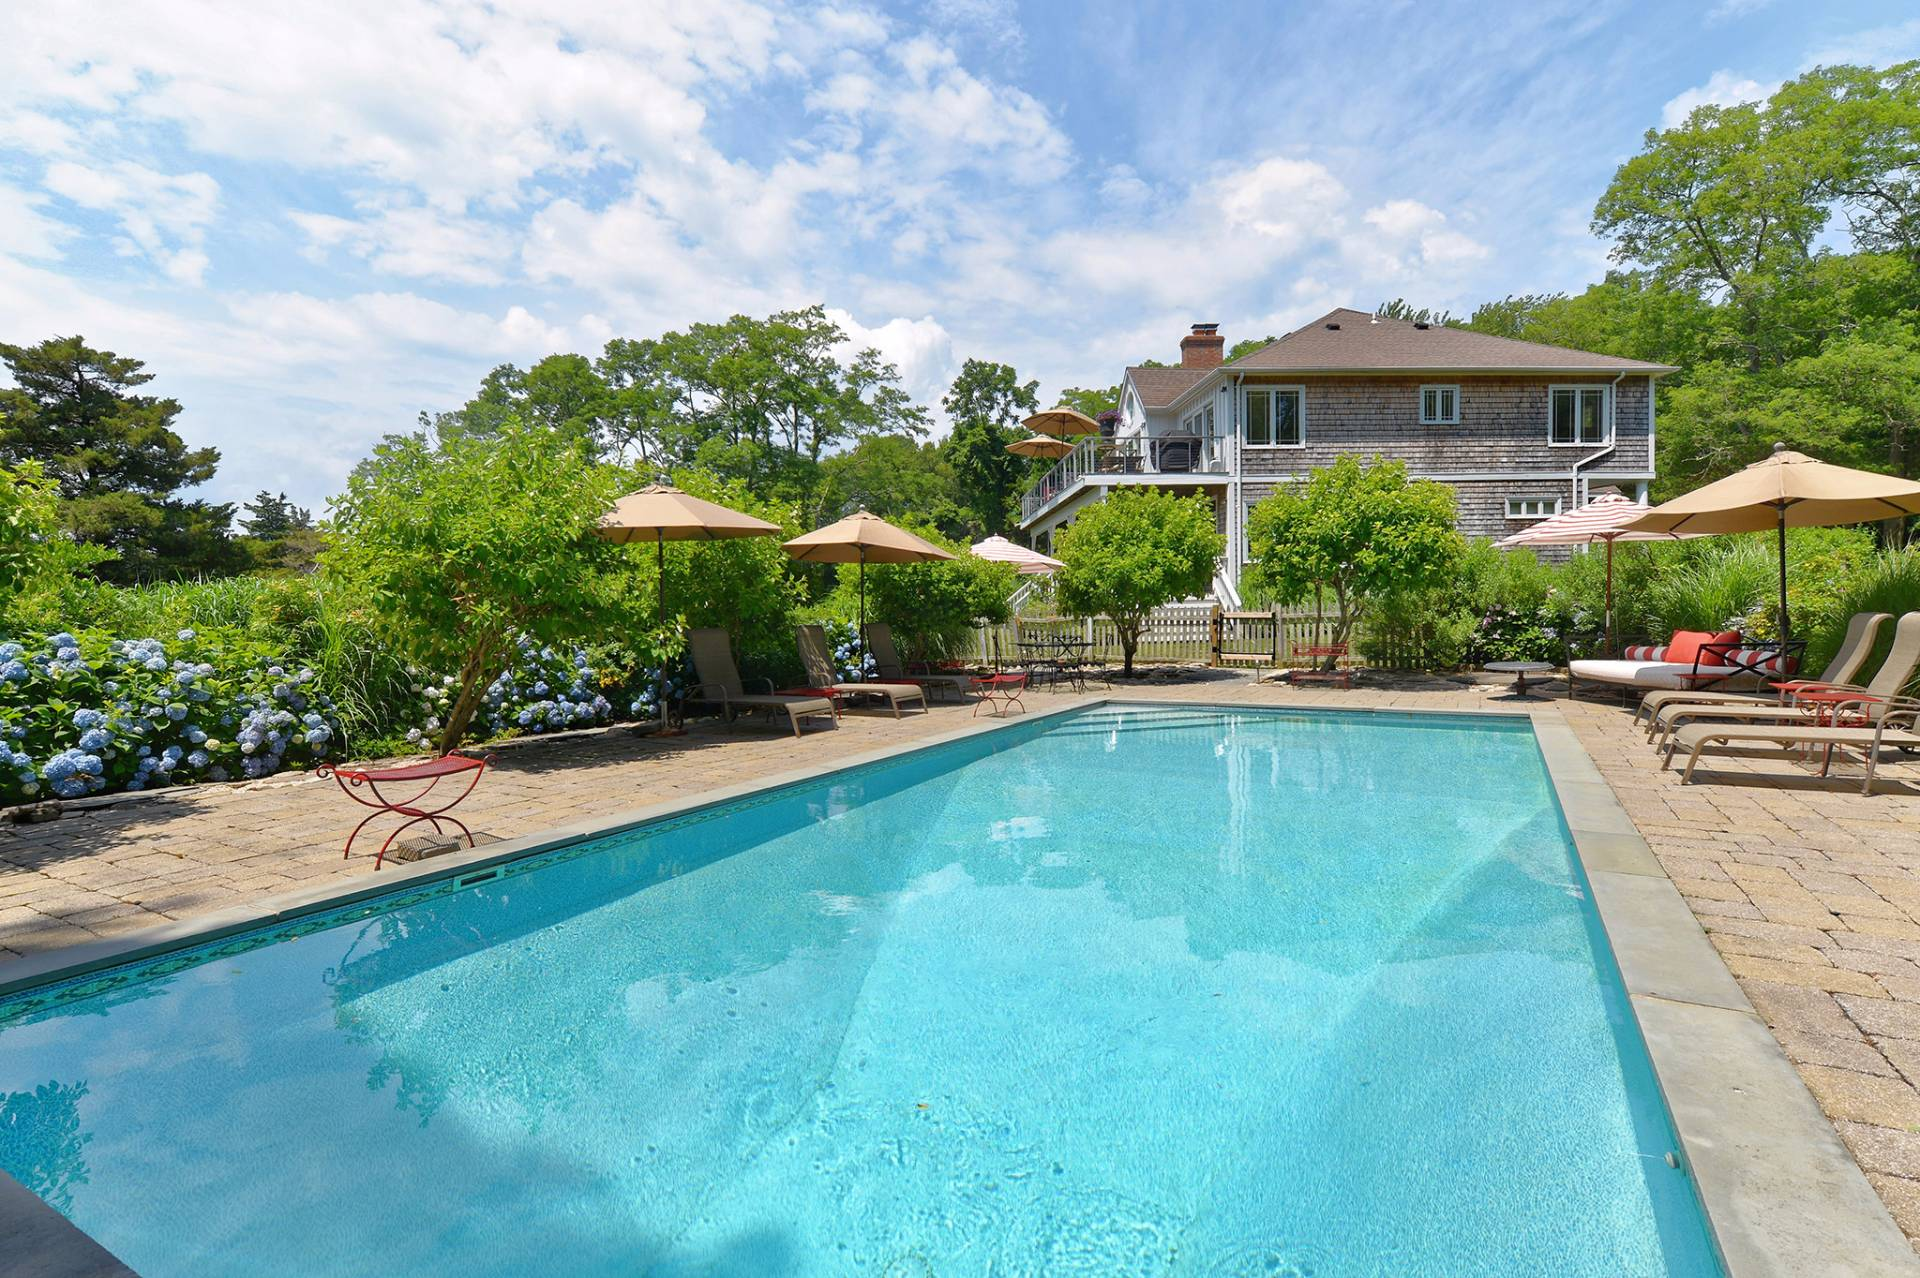 Additional photo for property listing at Shelter Island Waterfront Oasis With Dock And Pool 9 North Menantic Road,  Shelter Island, New York